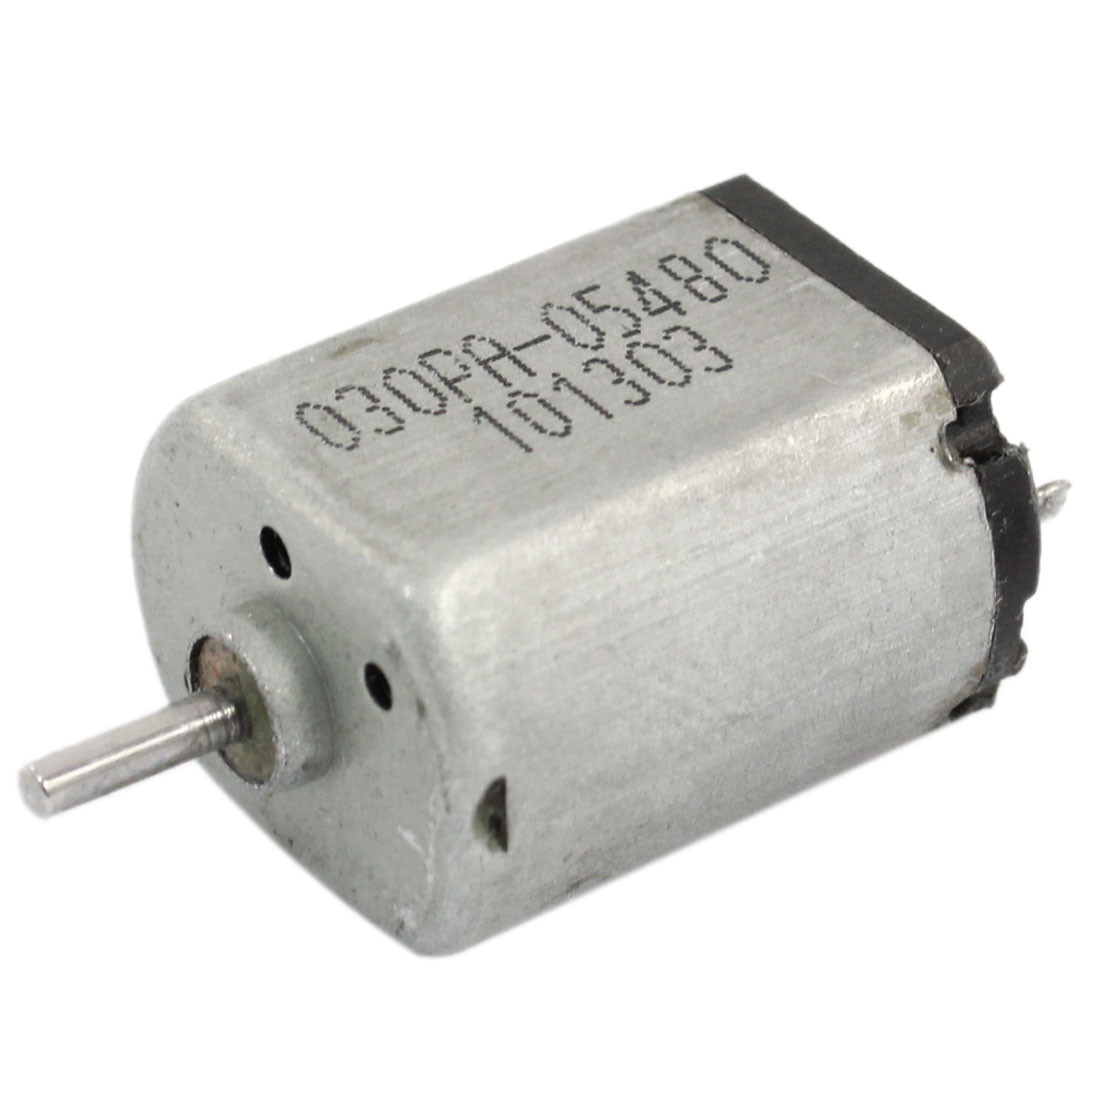 DC 1.5-9V 3200 RPM 2 Pin Cylindrical Magnet Micro Motor Silver Tone